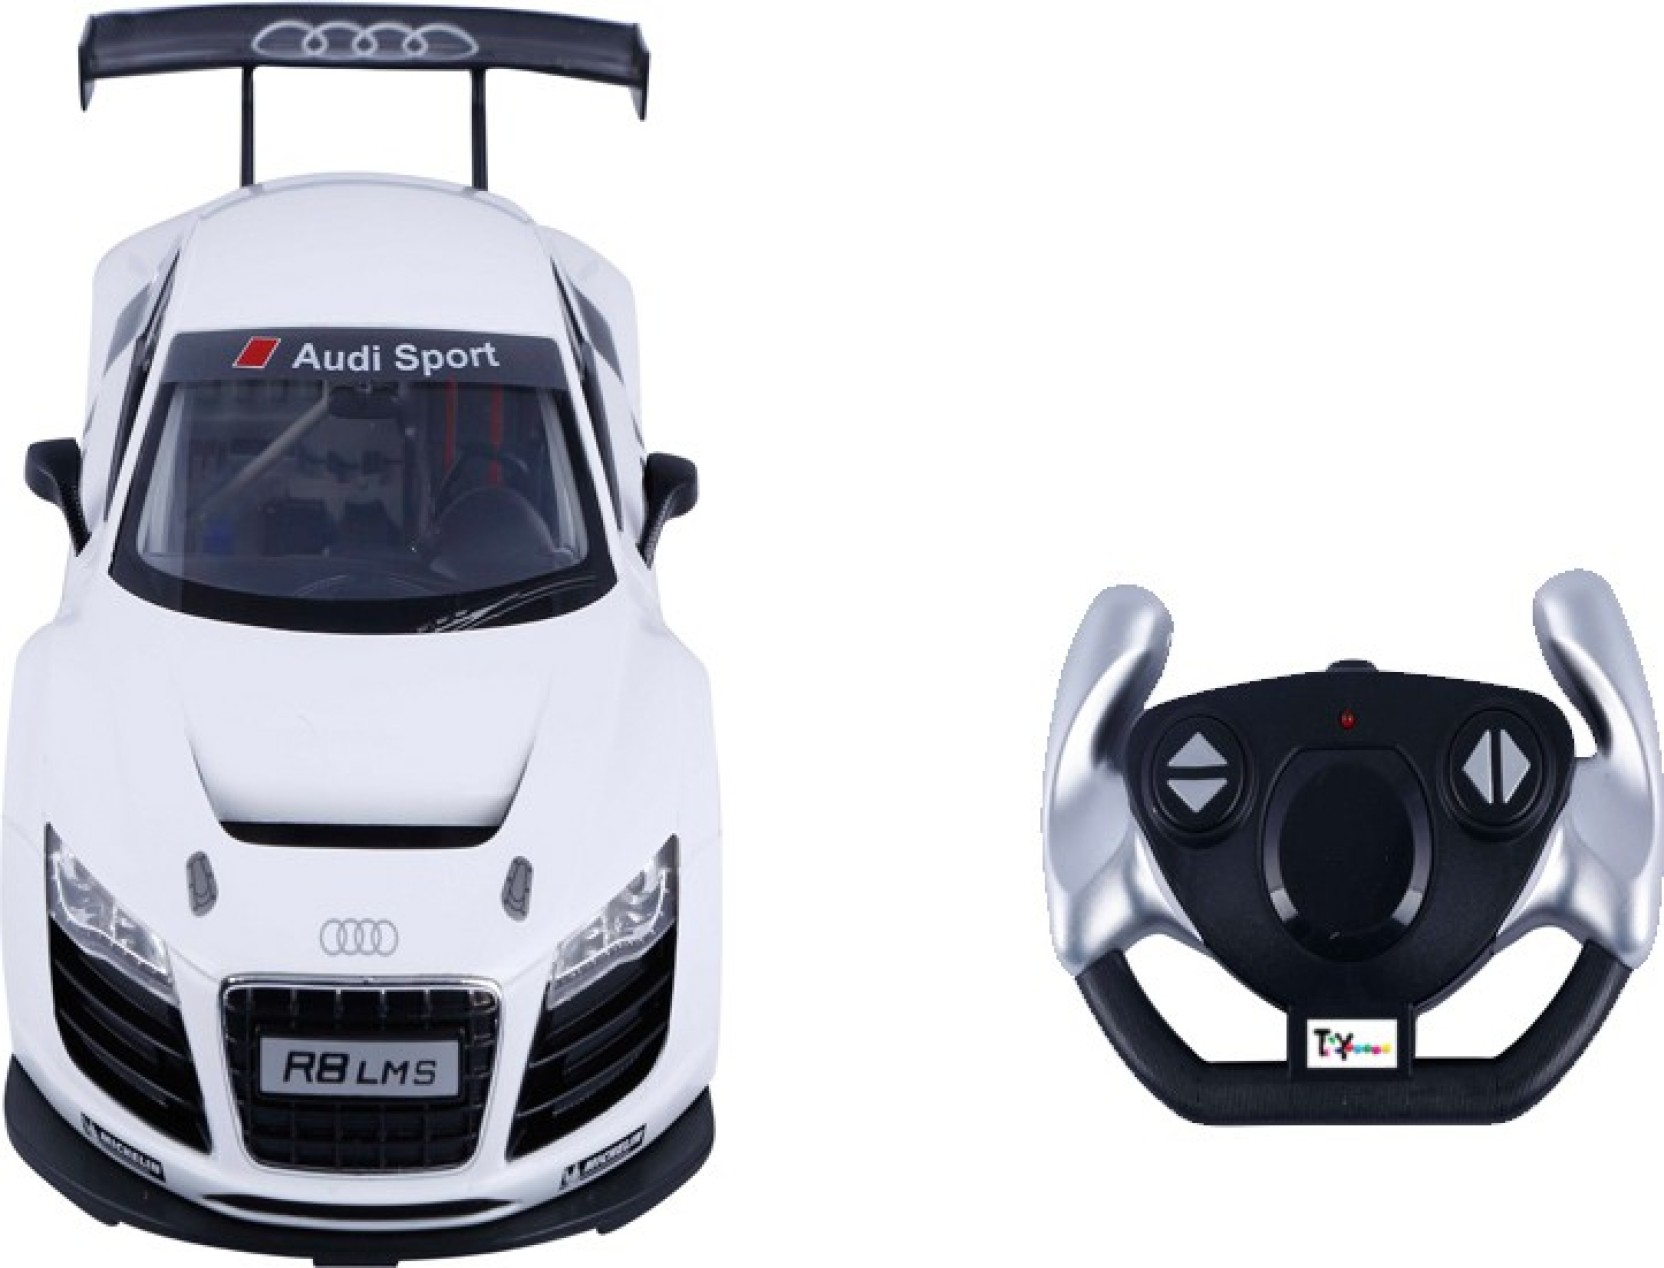 Toyhouse Radio Remote Control 114 Audi R8 Lms Rc Scale Model Car Lionel Trains Supero Switches No 112 On Offer